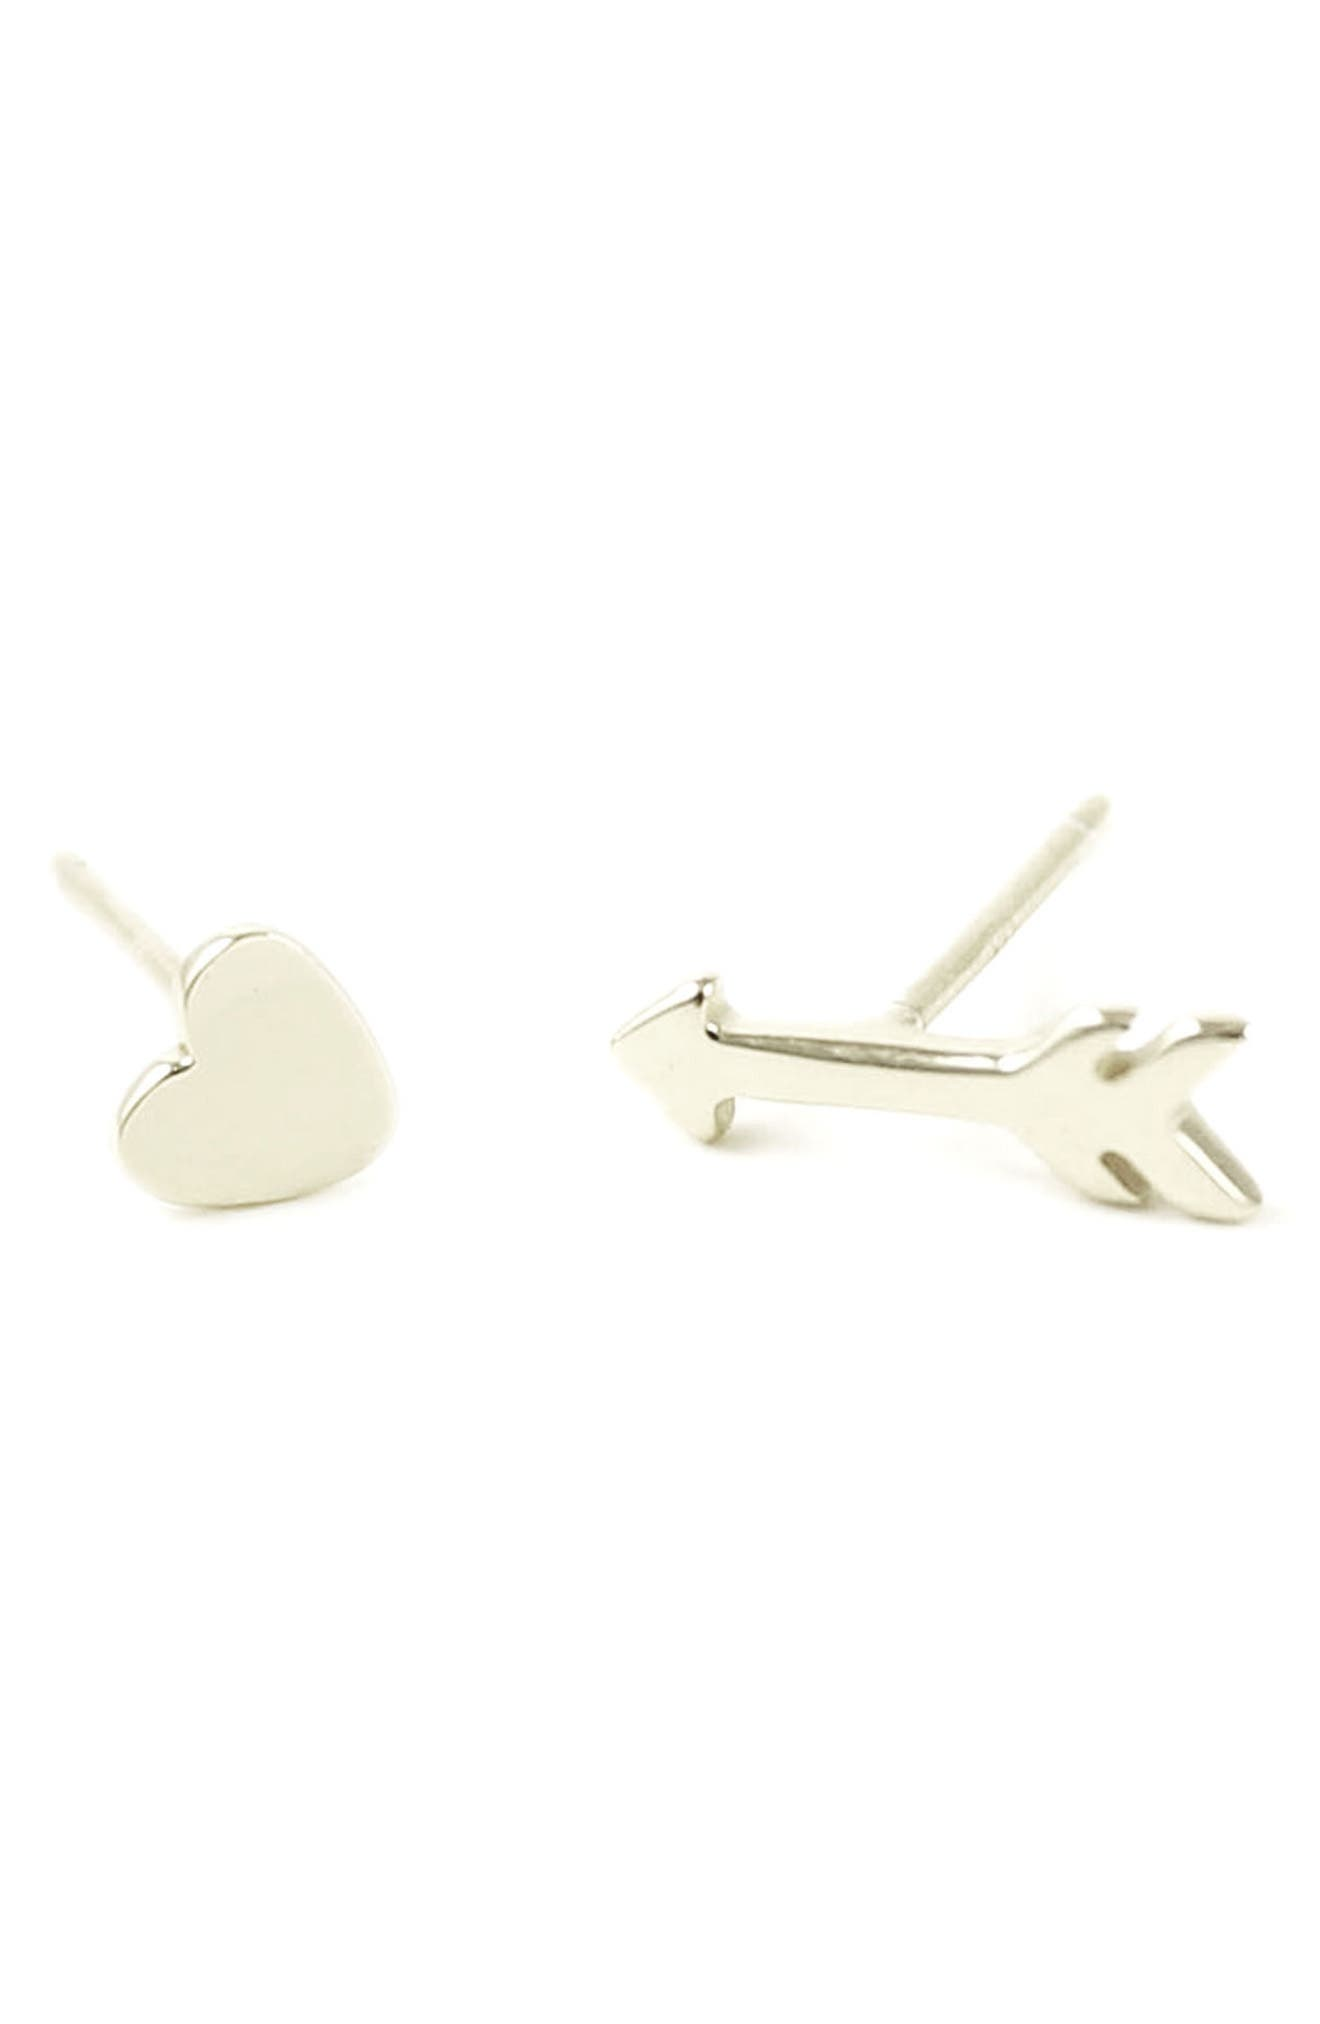 Heart & Arrow Stud Earrings,                         Main,                         color, Silver